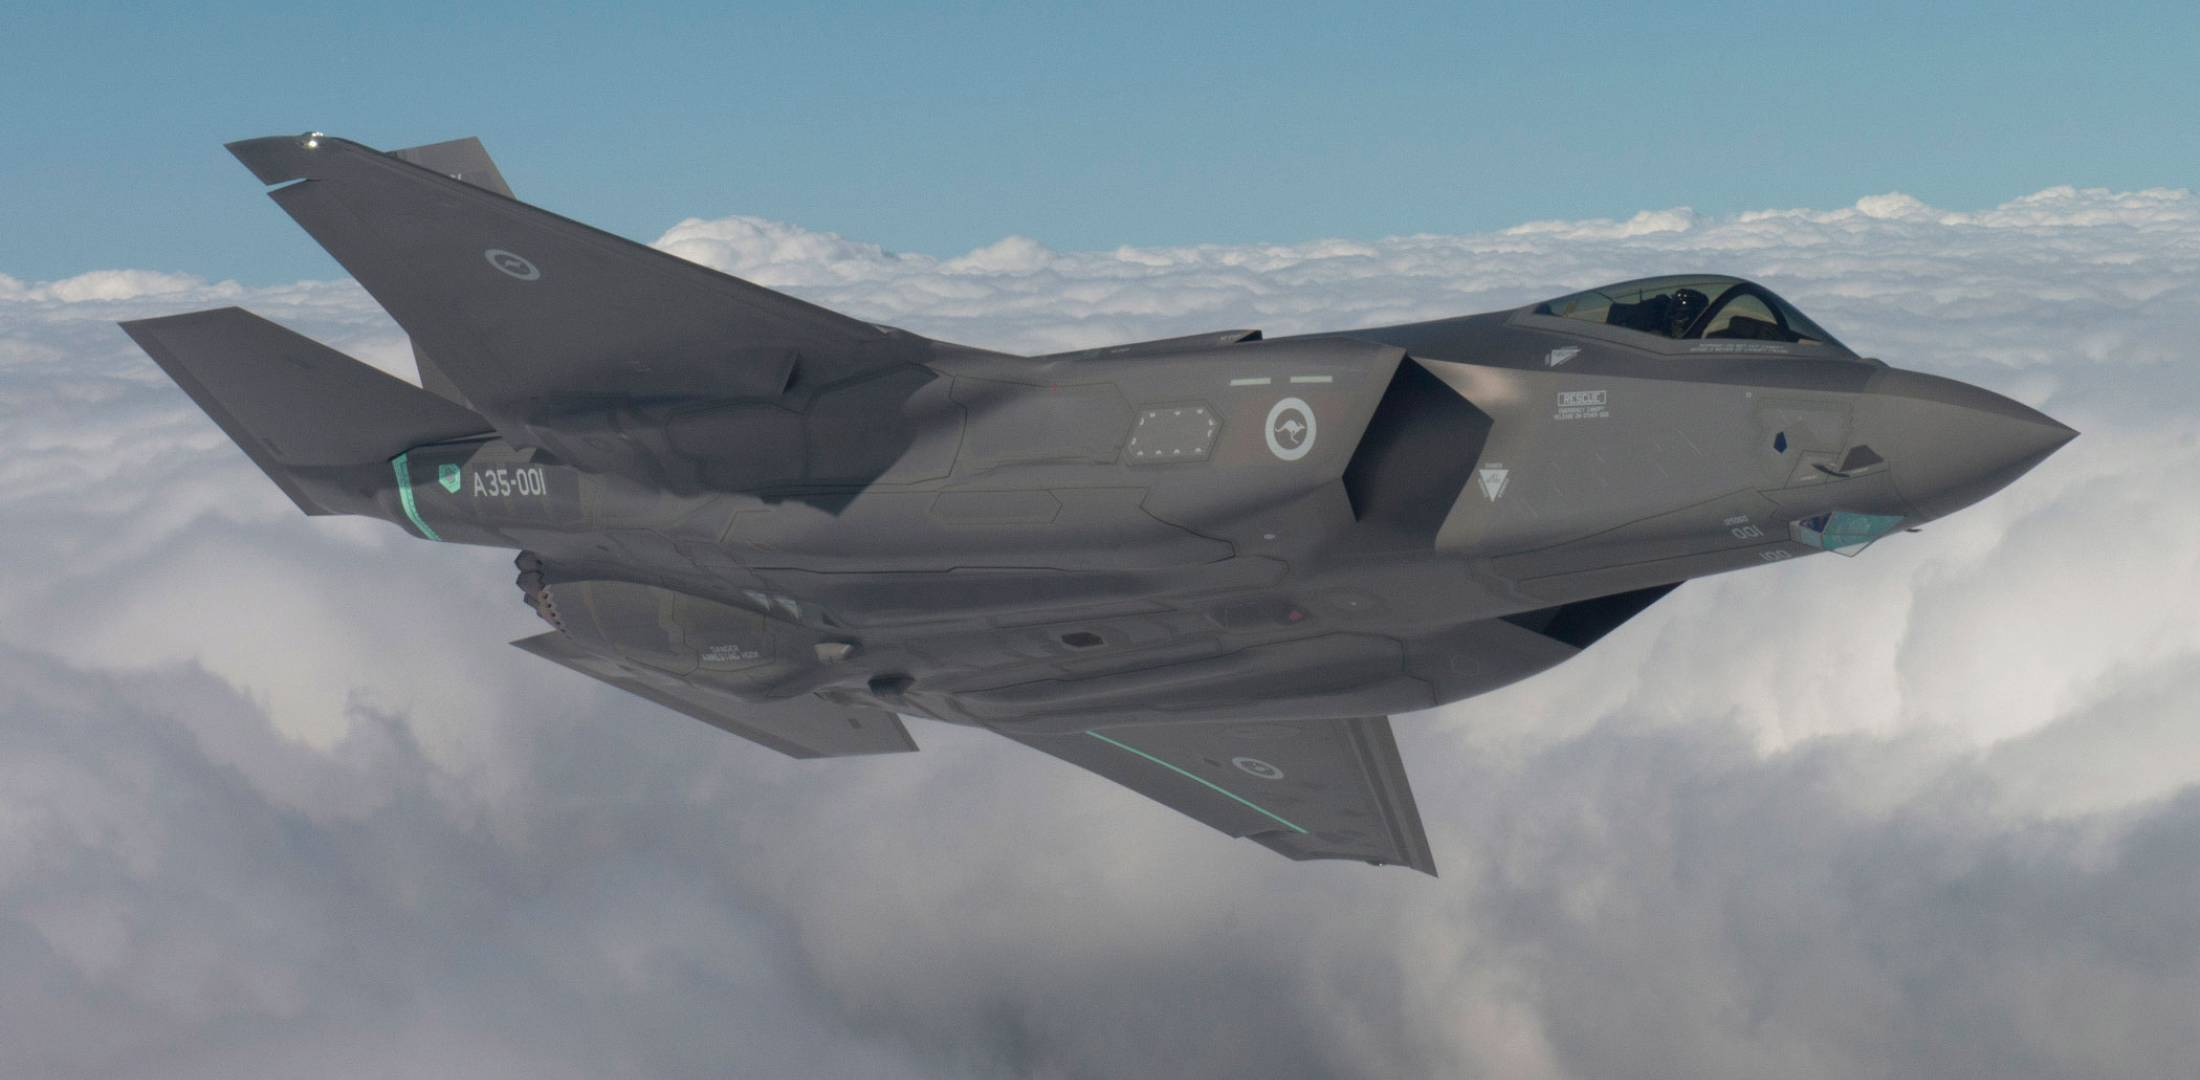 To minimize costs and maximize the effectiveness of its new F-35A fleet, the RAAF will have to closely follow U.S. weapons and training decisions.